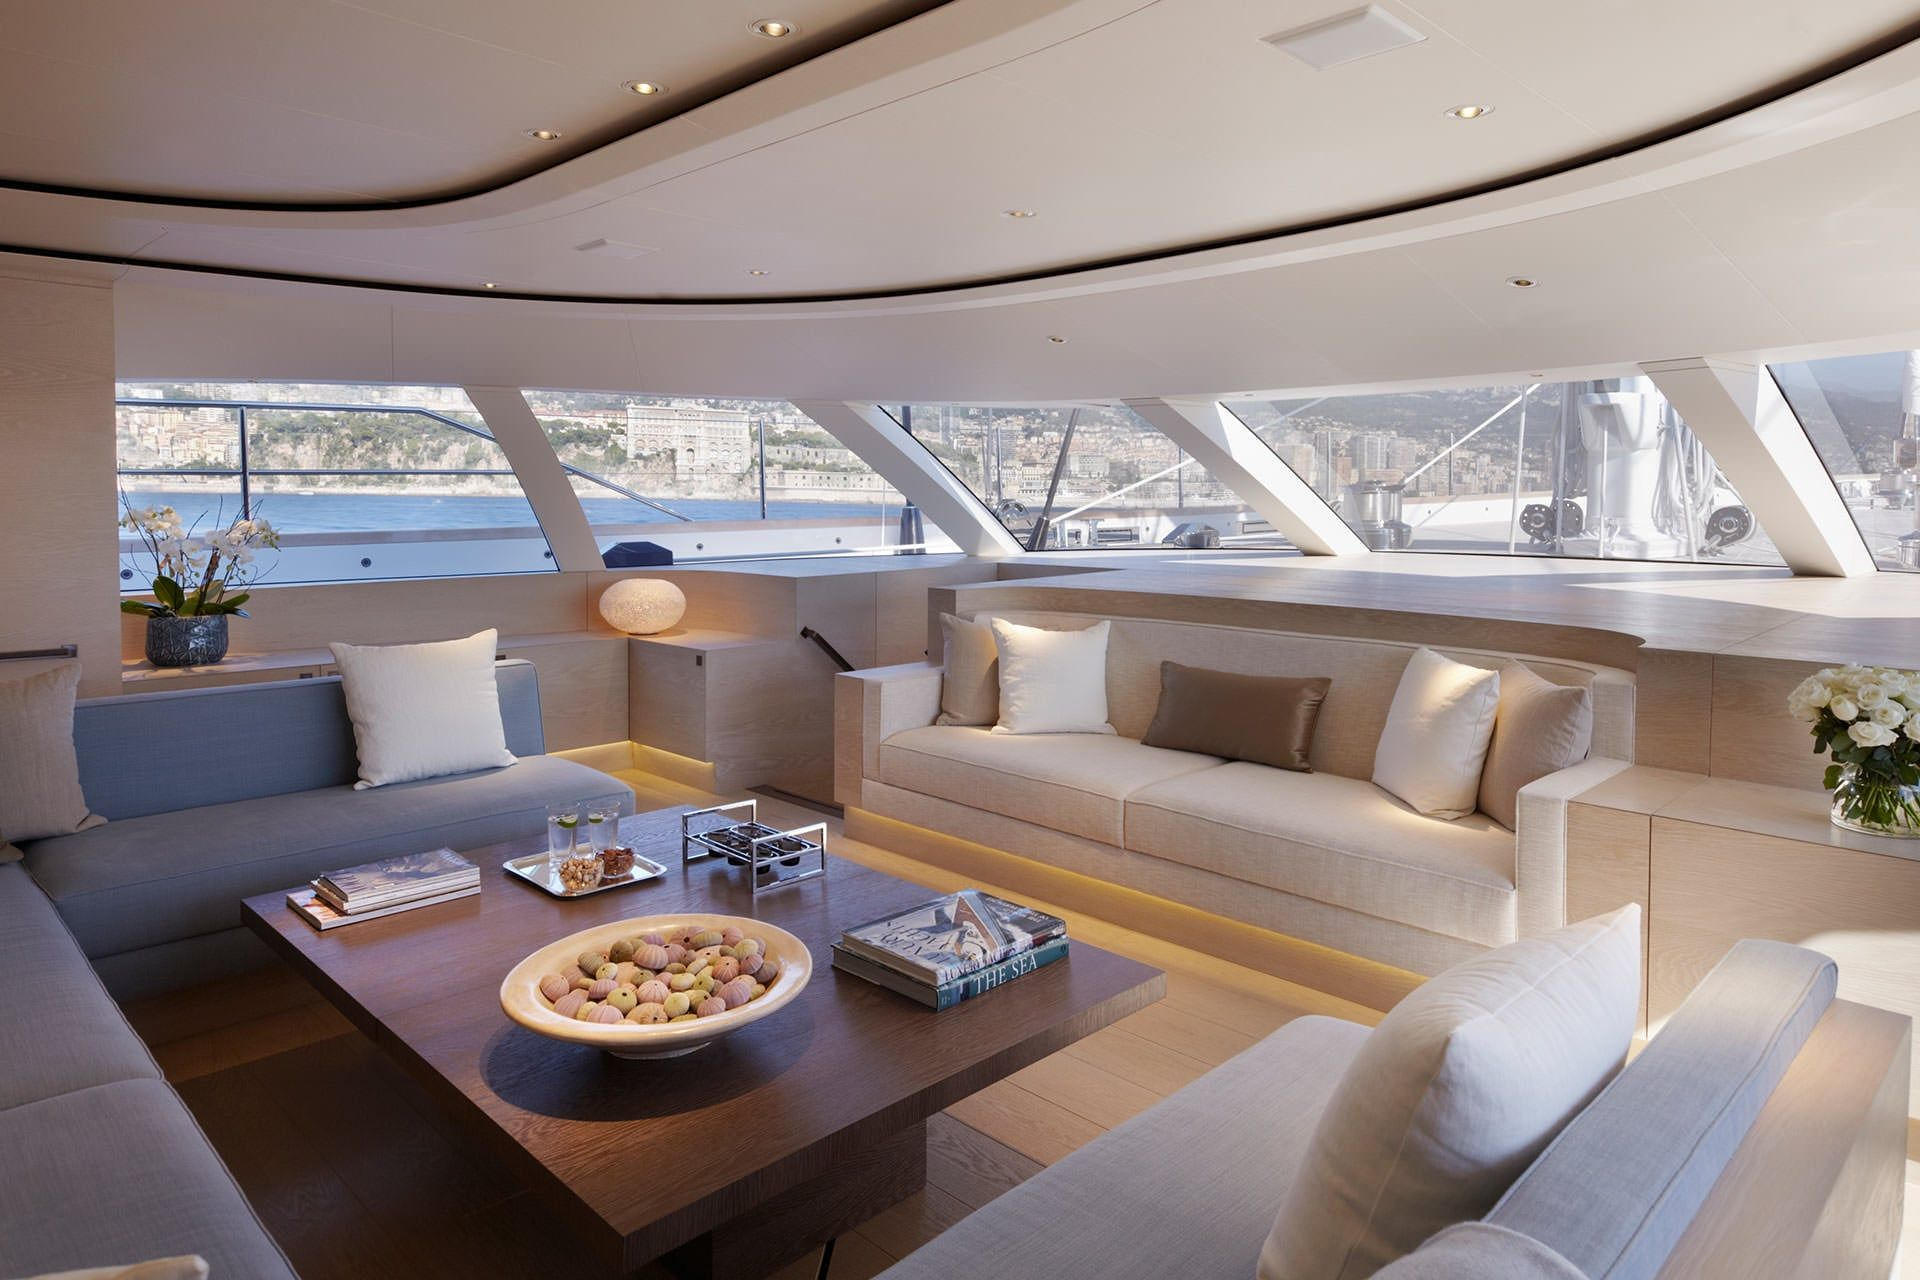 Lounge Bereich | Yacht | Pinterest | Boat interior and Interiors